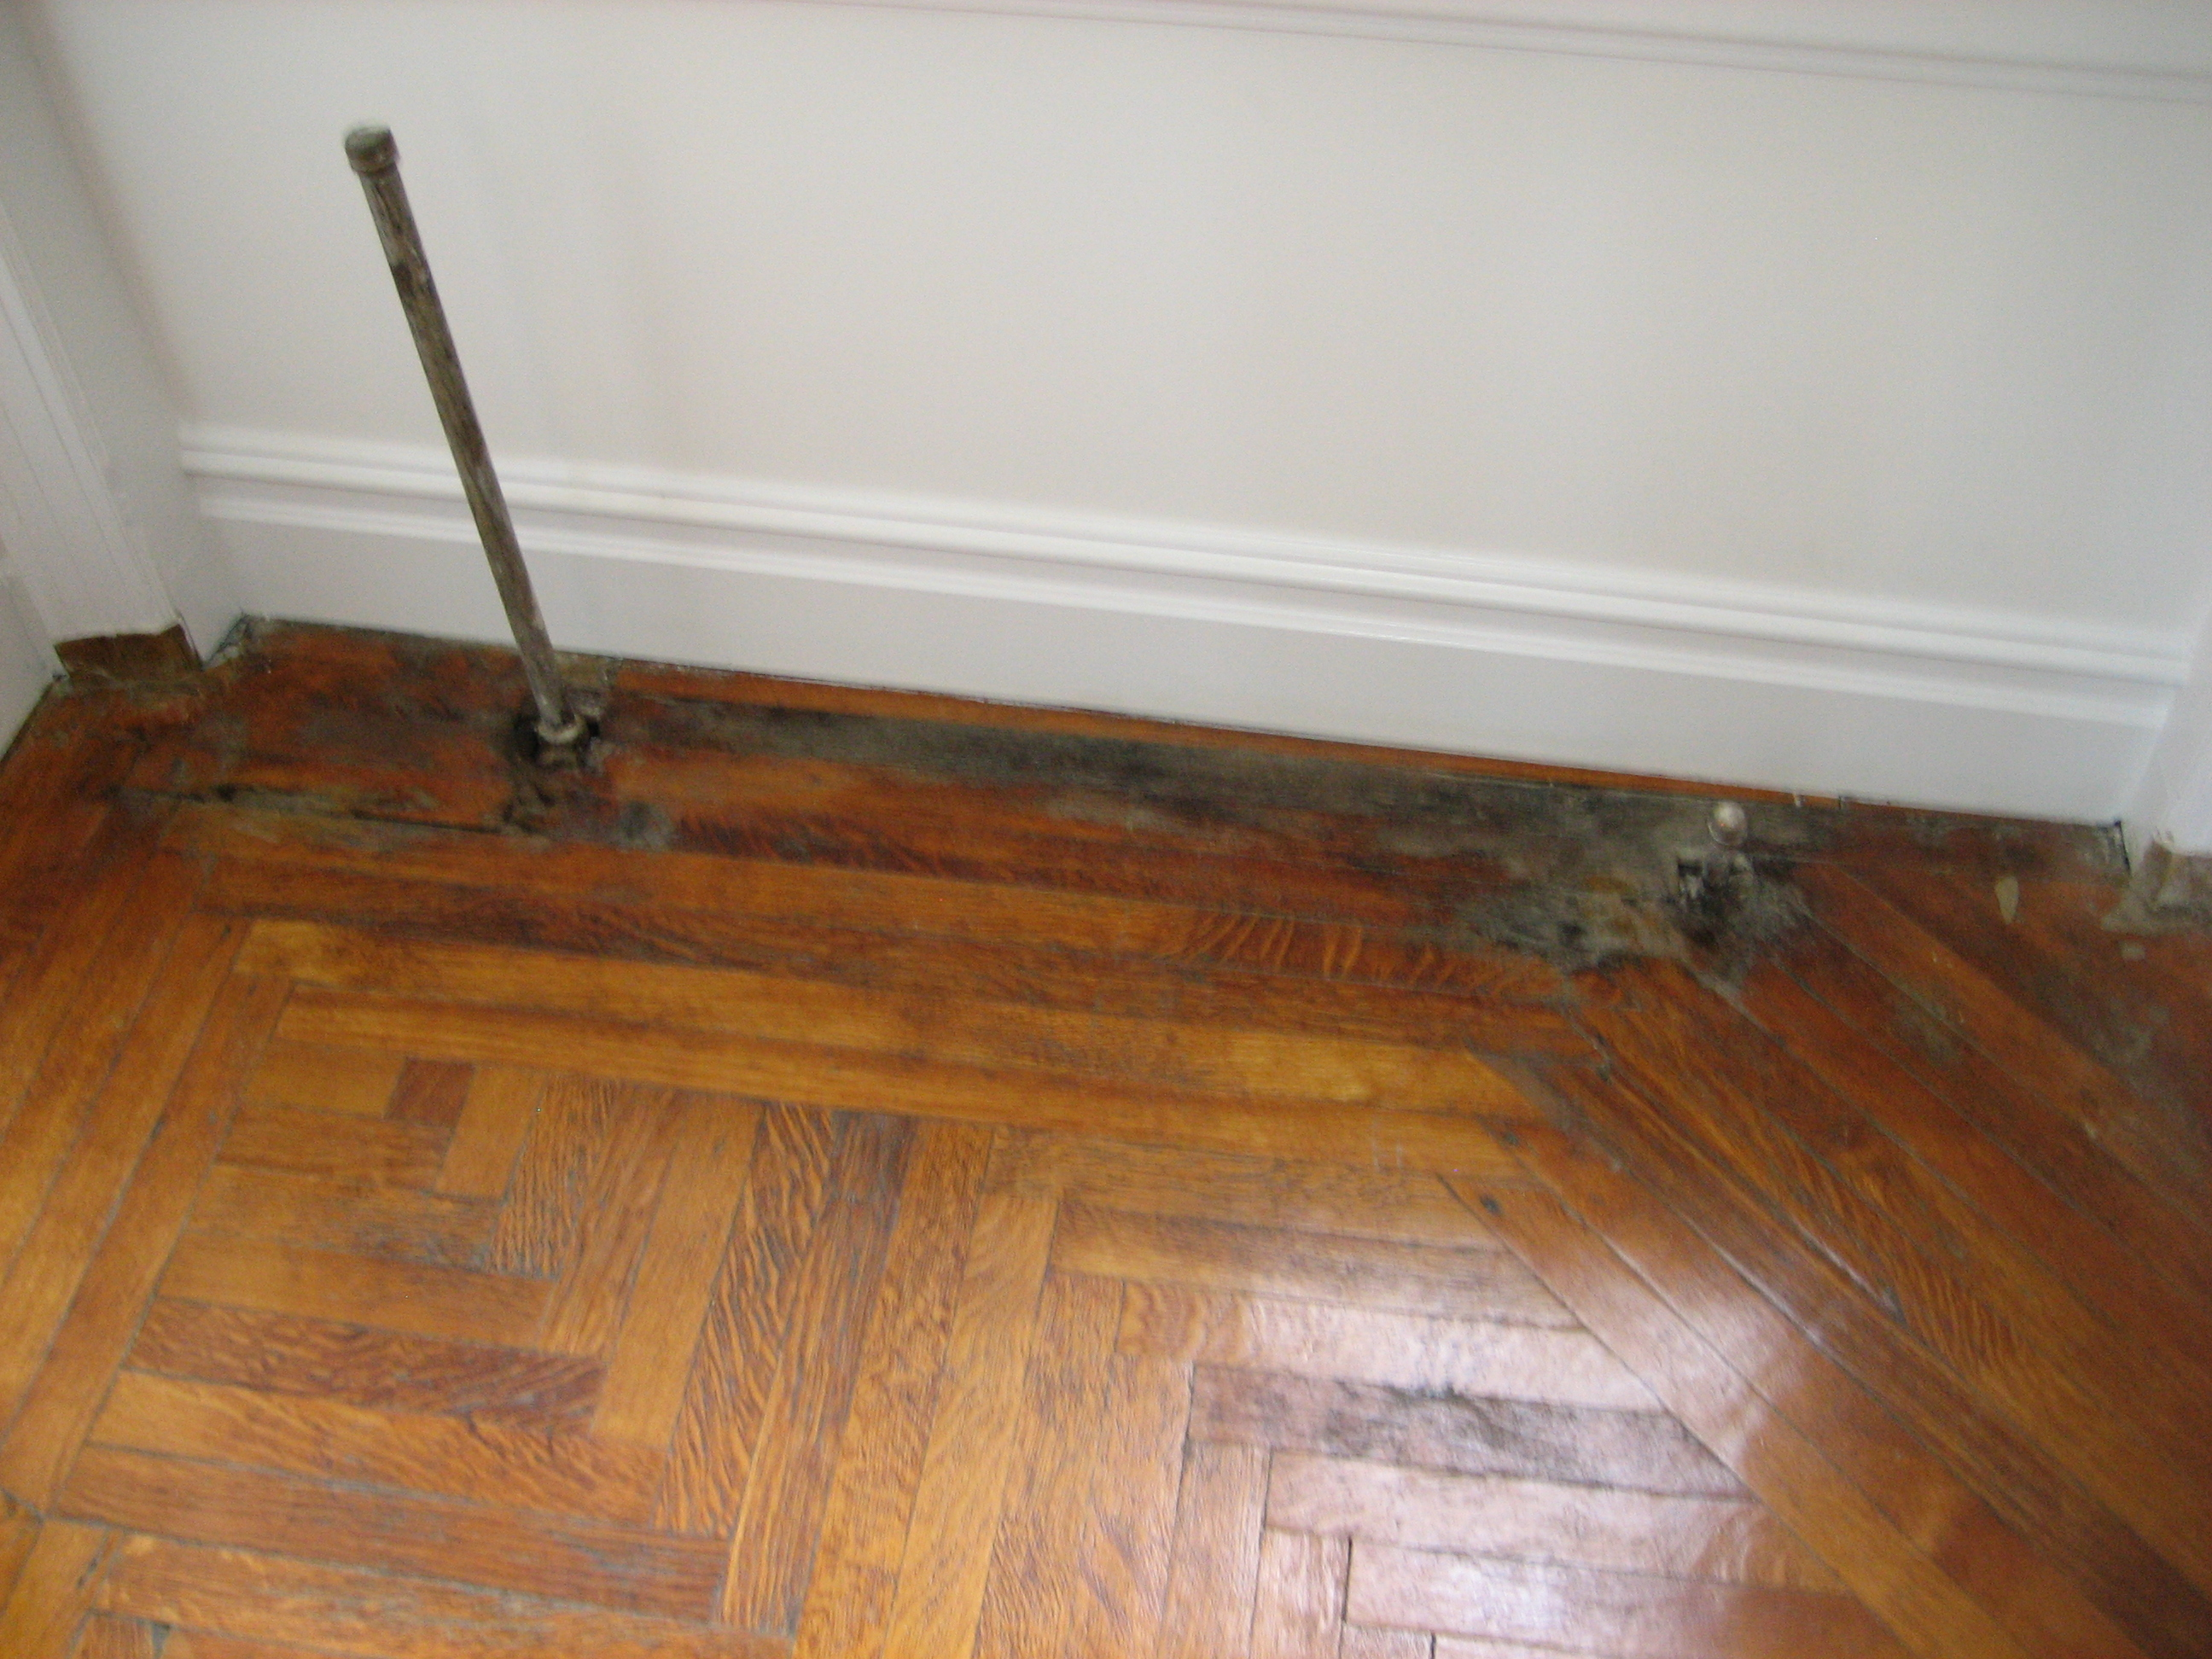 leaking radiators destroying the floor